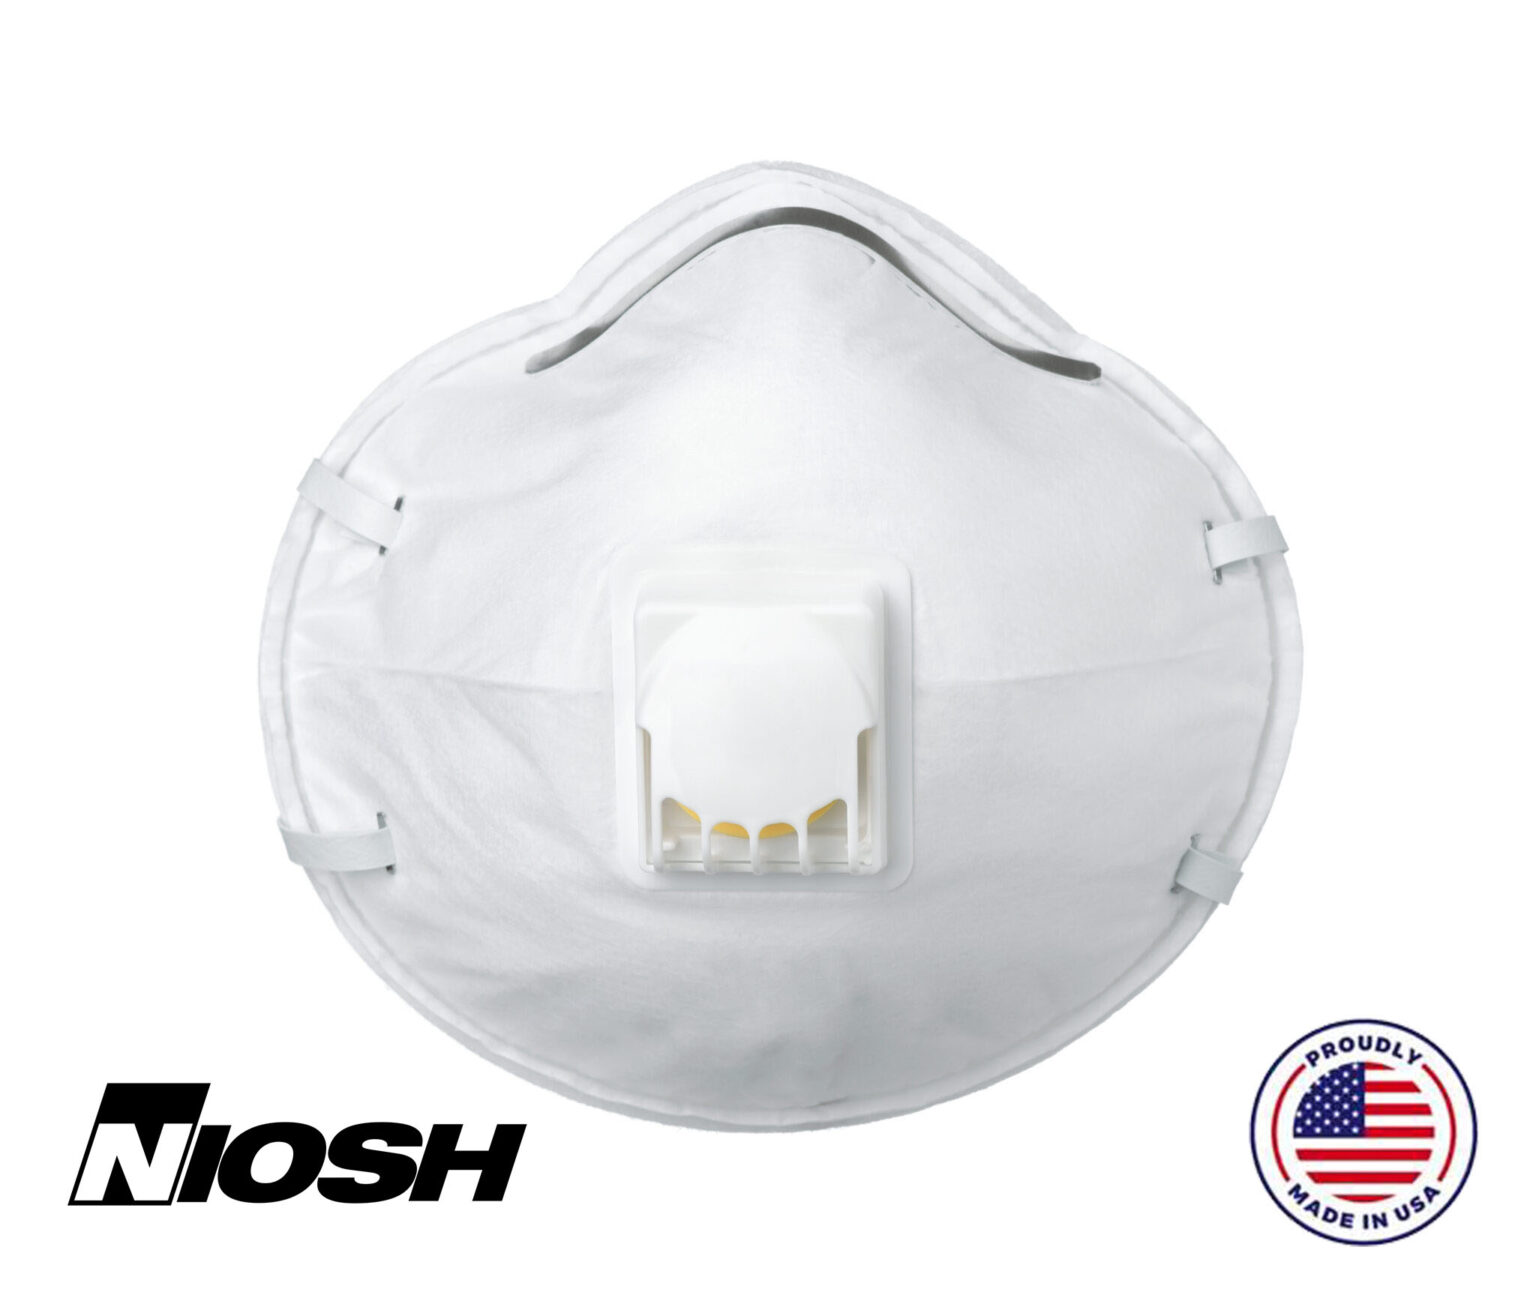 N95 Respirator Mask with Breathing Valve, Small